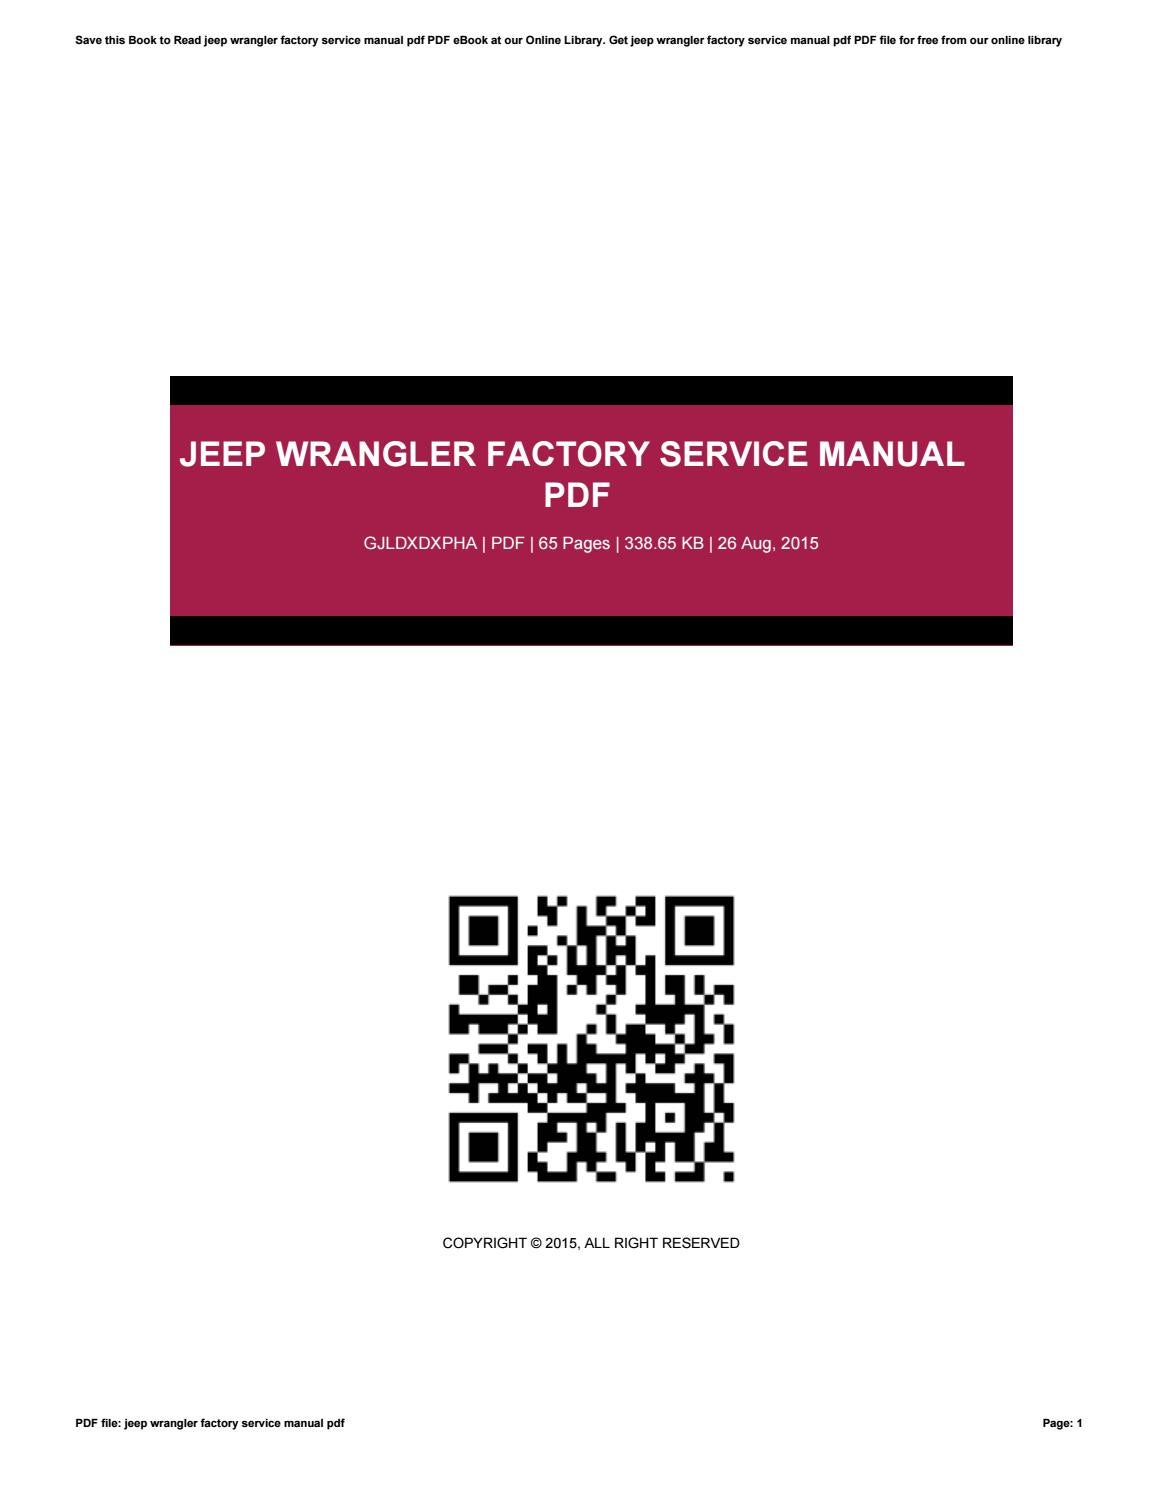 ... Array - jeep wrangler factory service manual pdf by jack mooney issuu  rh issuu ...